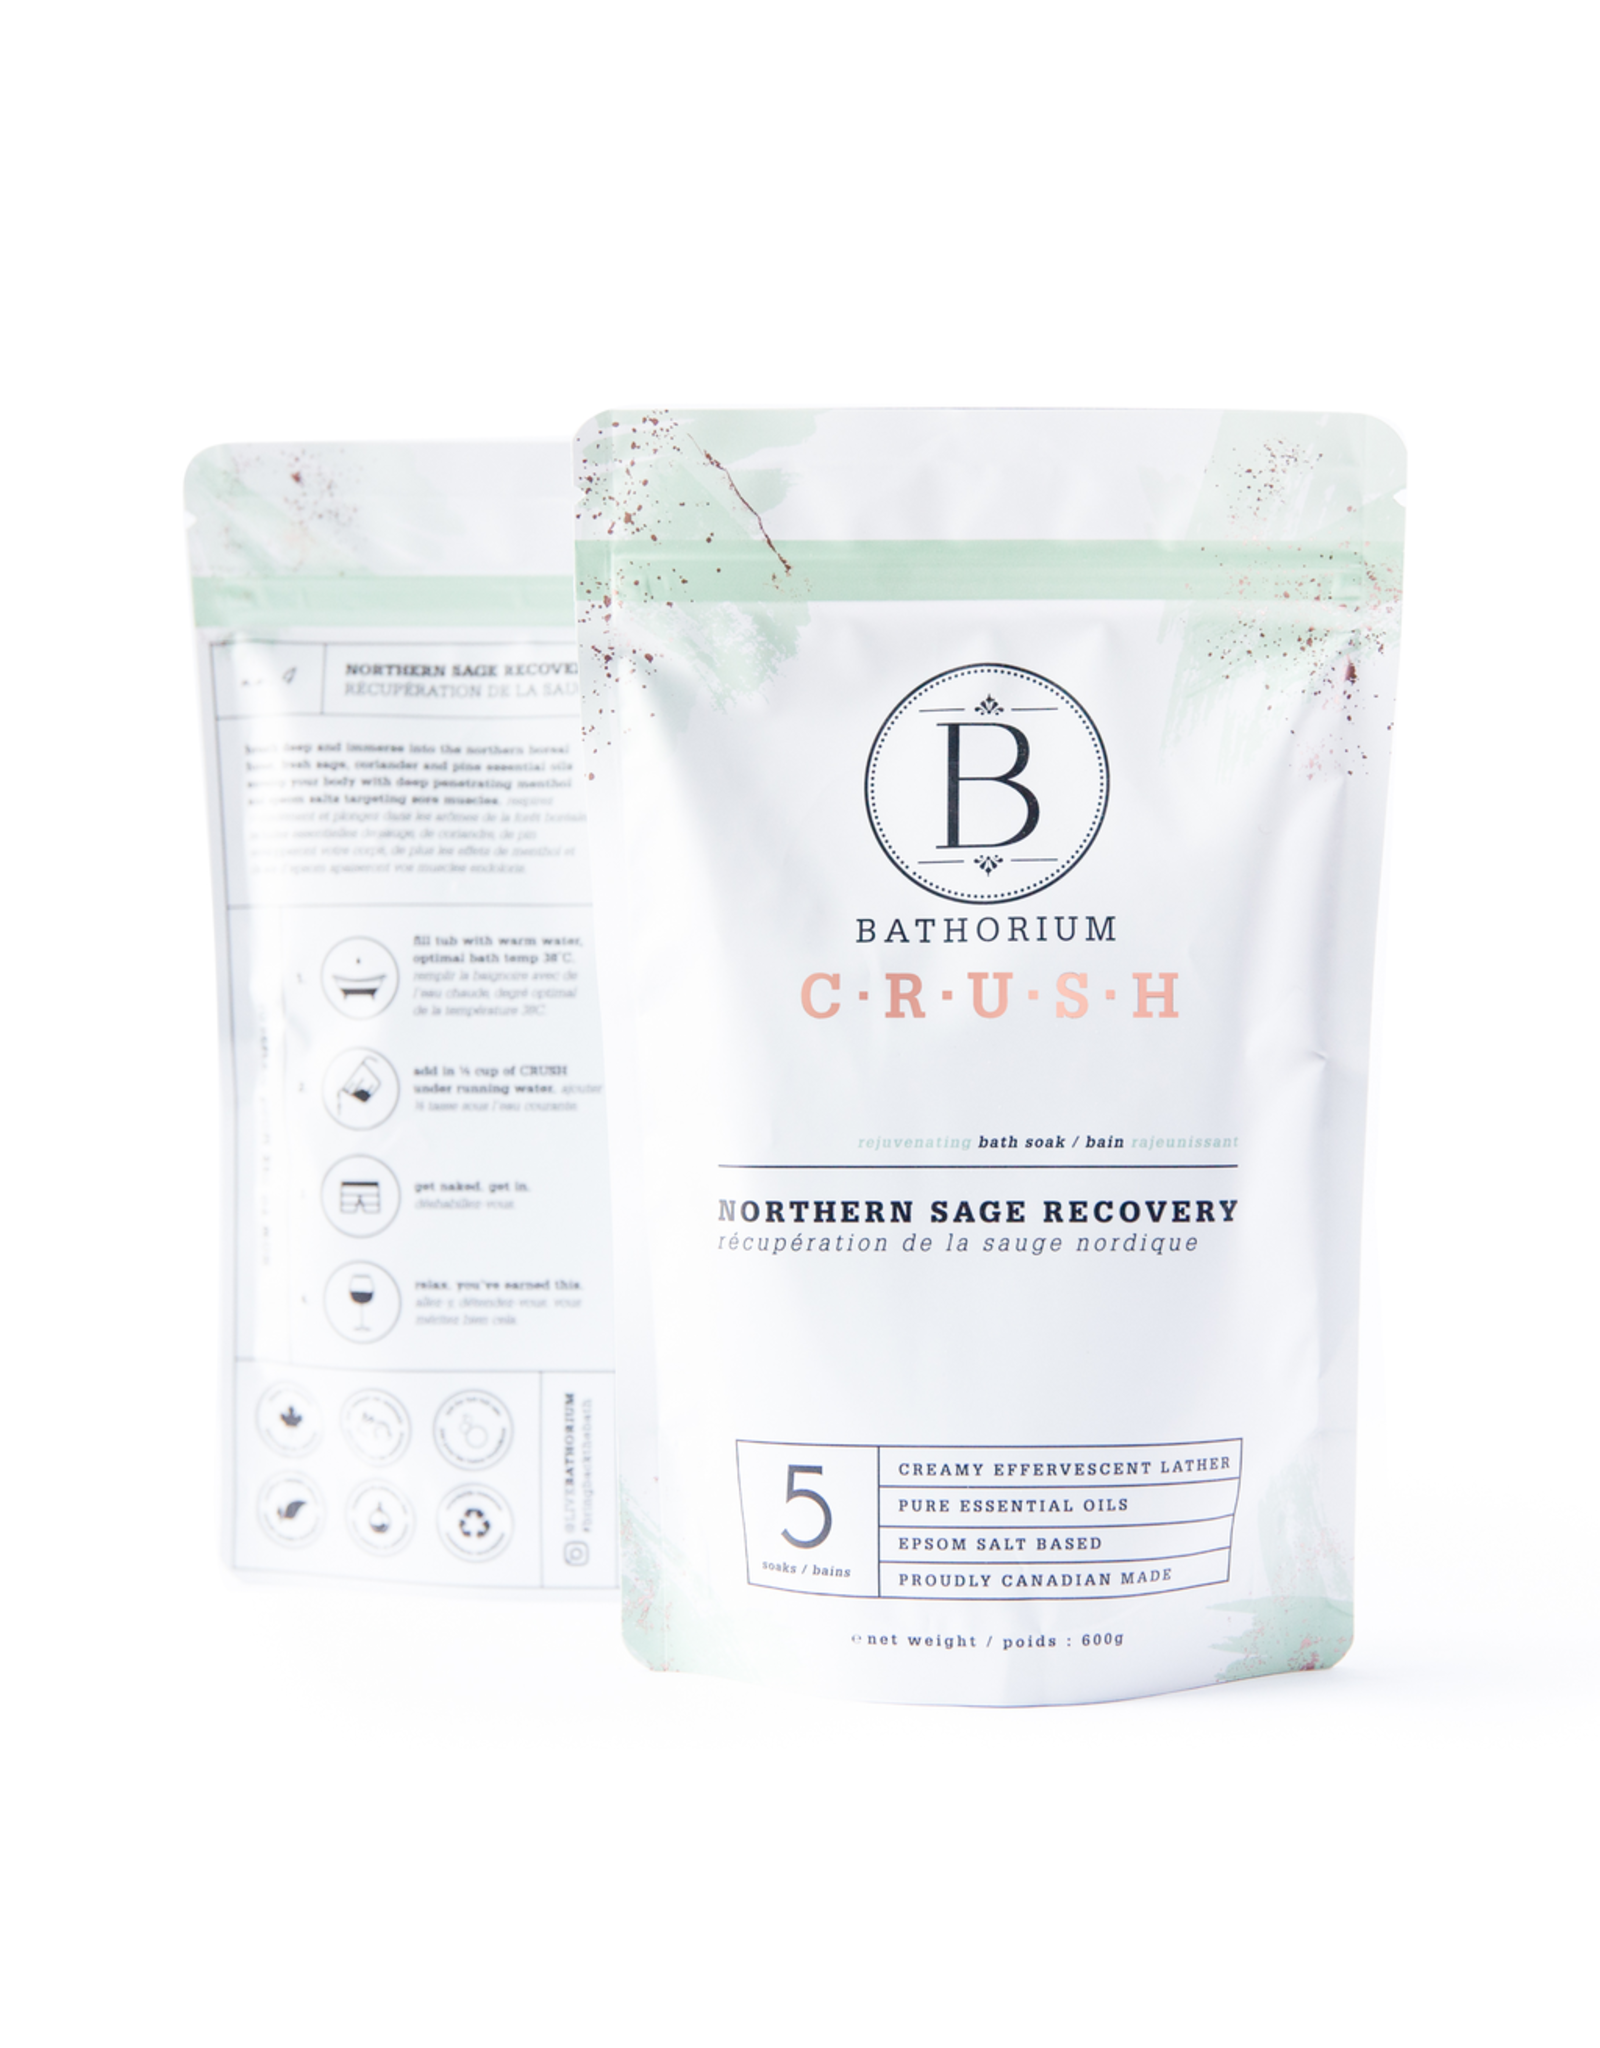 BATHORIUM Northern Sage Recovery - CRUSH (600 g)